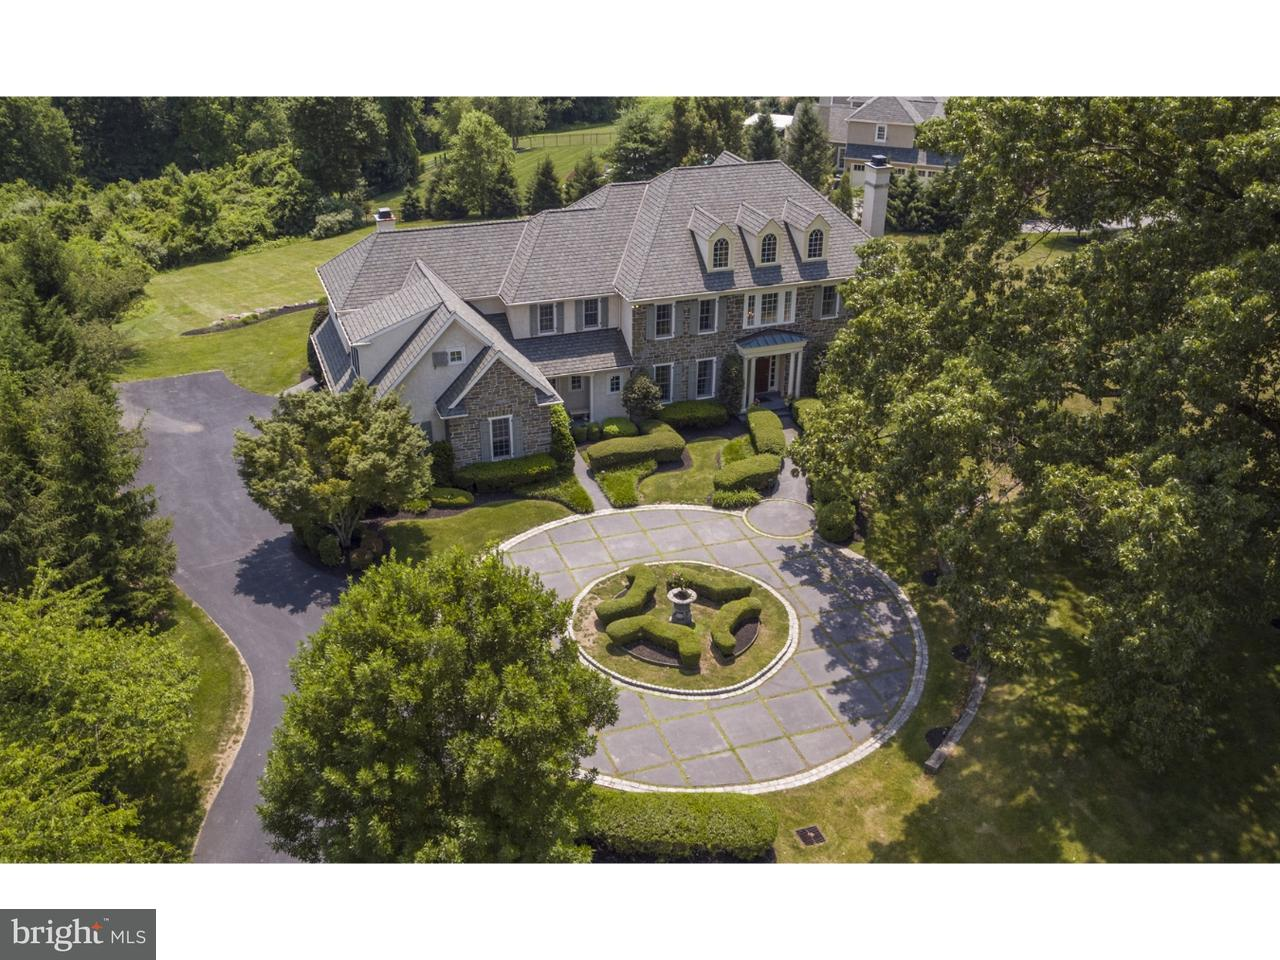 Single Family Home for Rent at 104 WATER MILL Lane Media, Pennsylvania 19063 United States